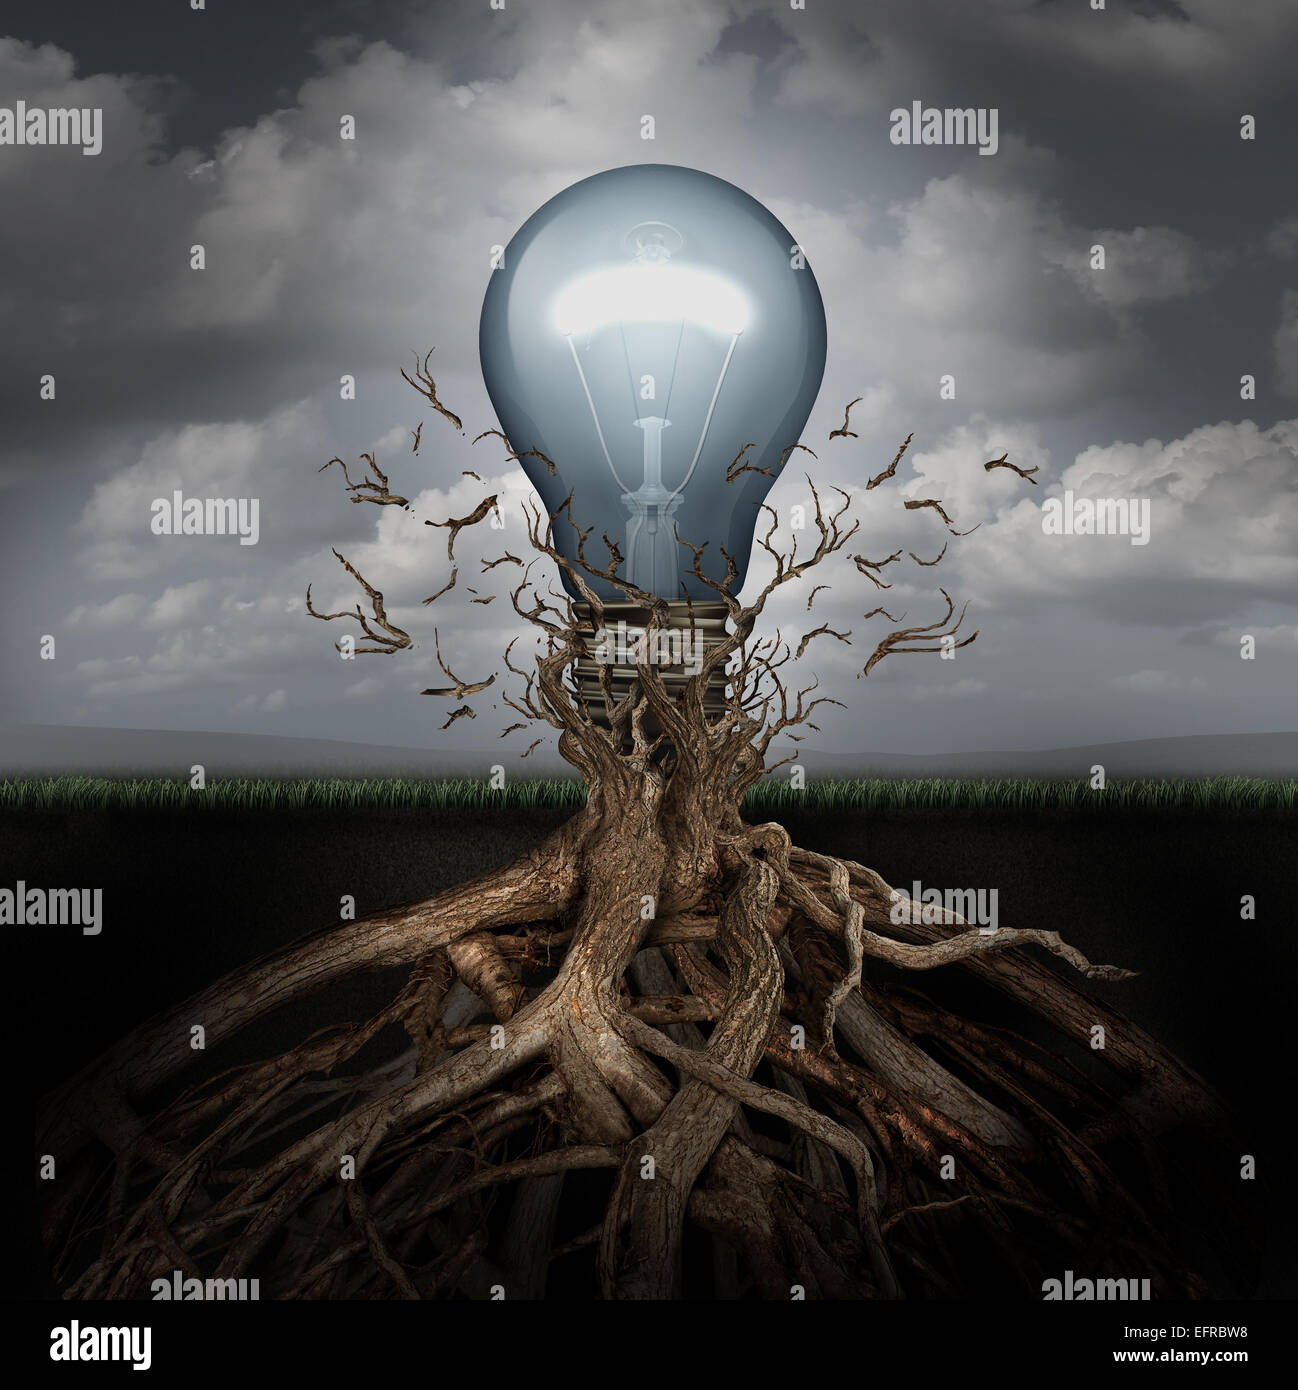 Concept of creativity and the rise of ideas as a light bulb emerging out from underground roots breaking free from - Stock Image